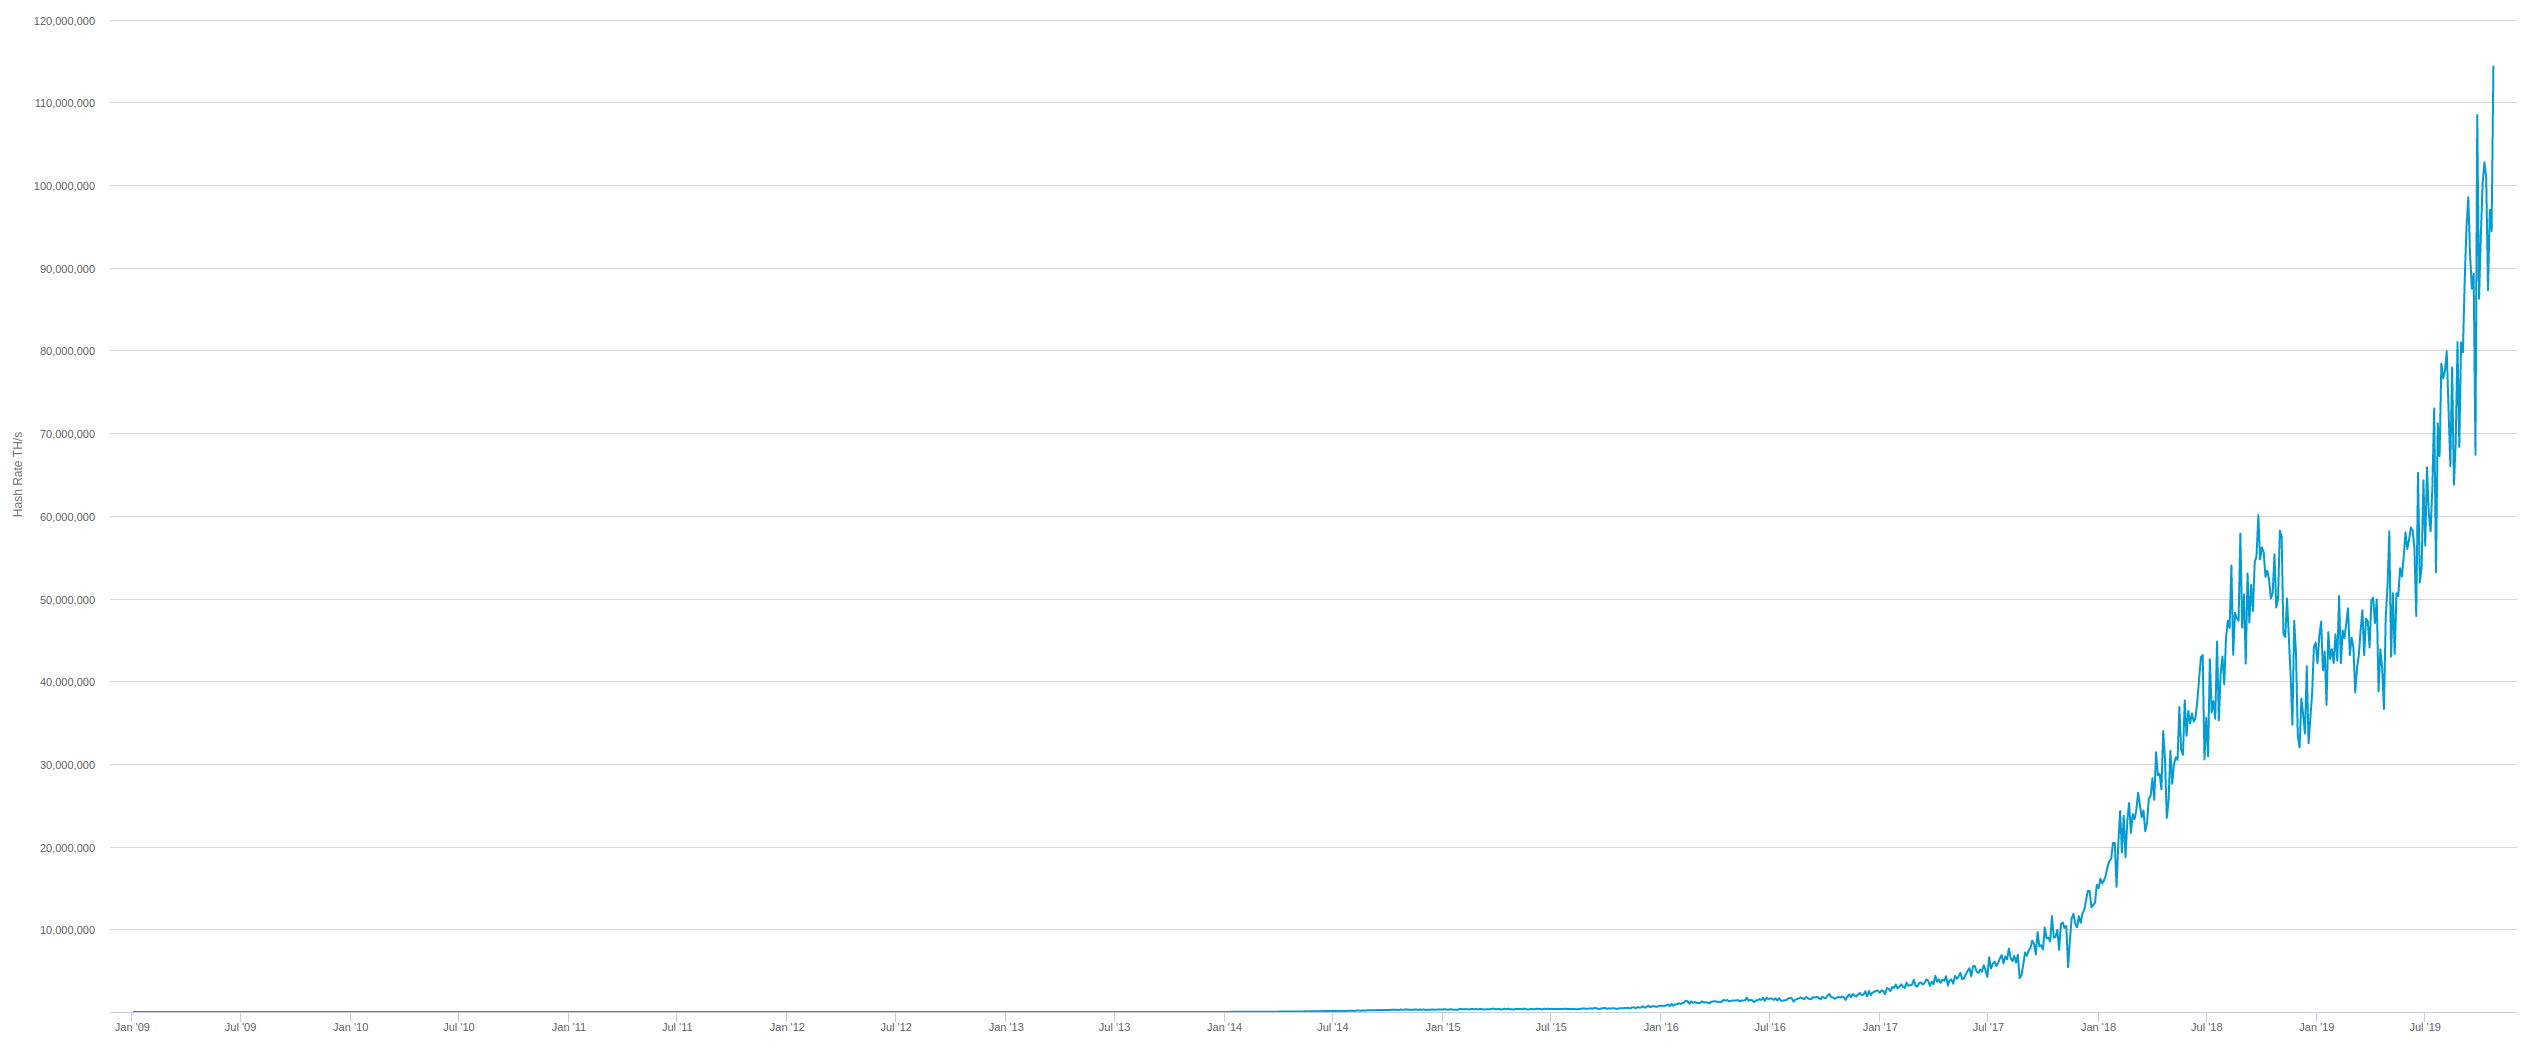 Graph of the Bitcoin hash rate since 2009